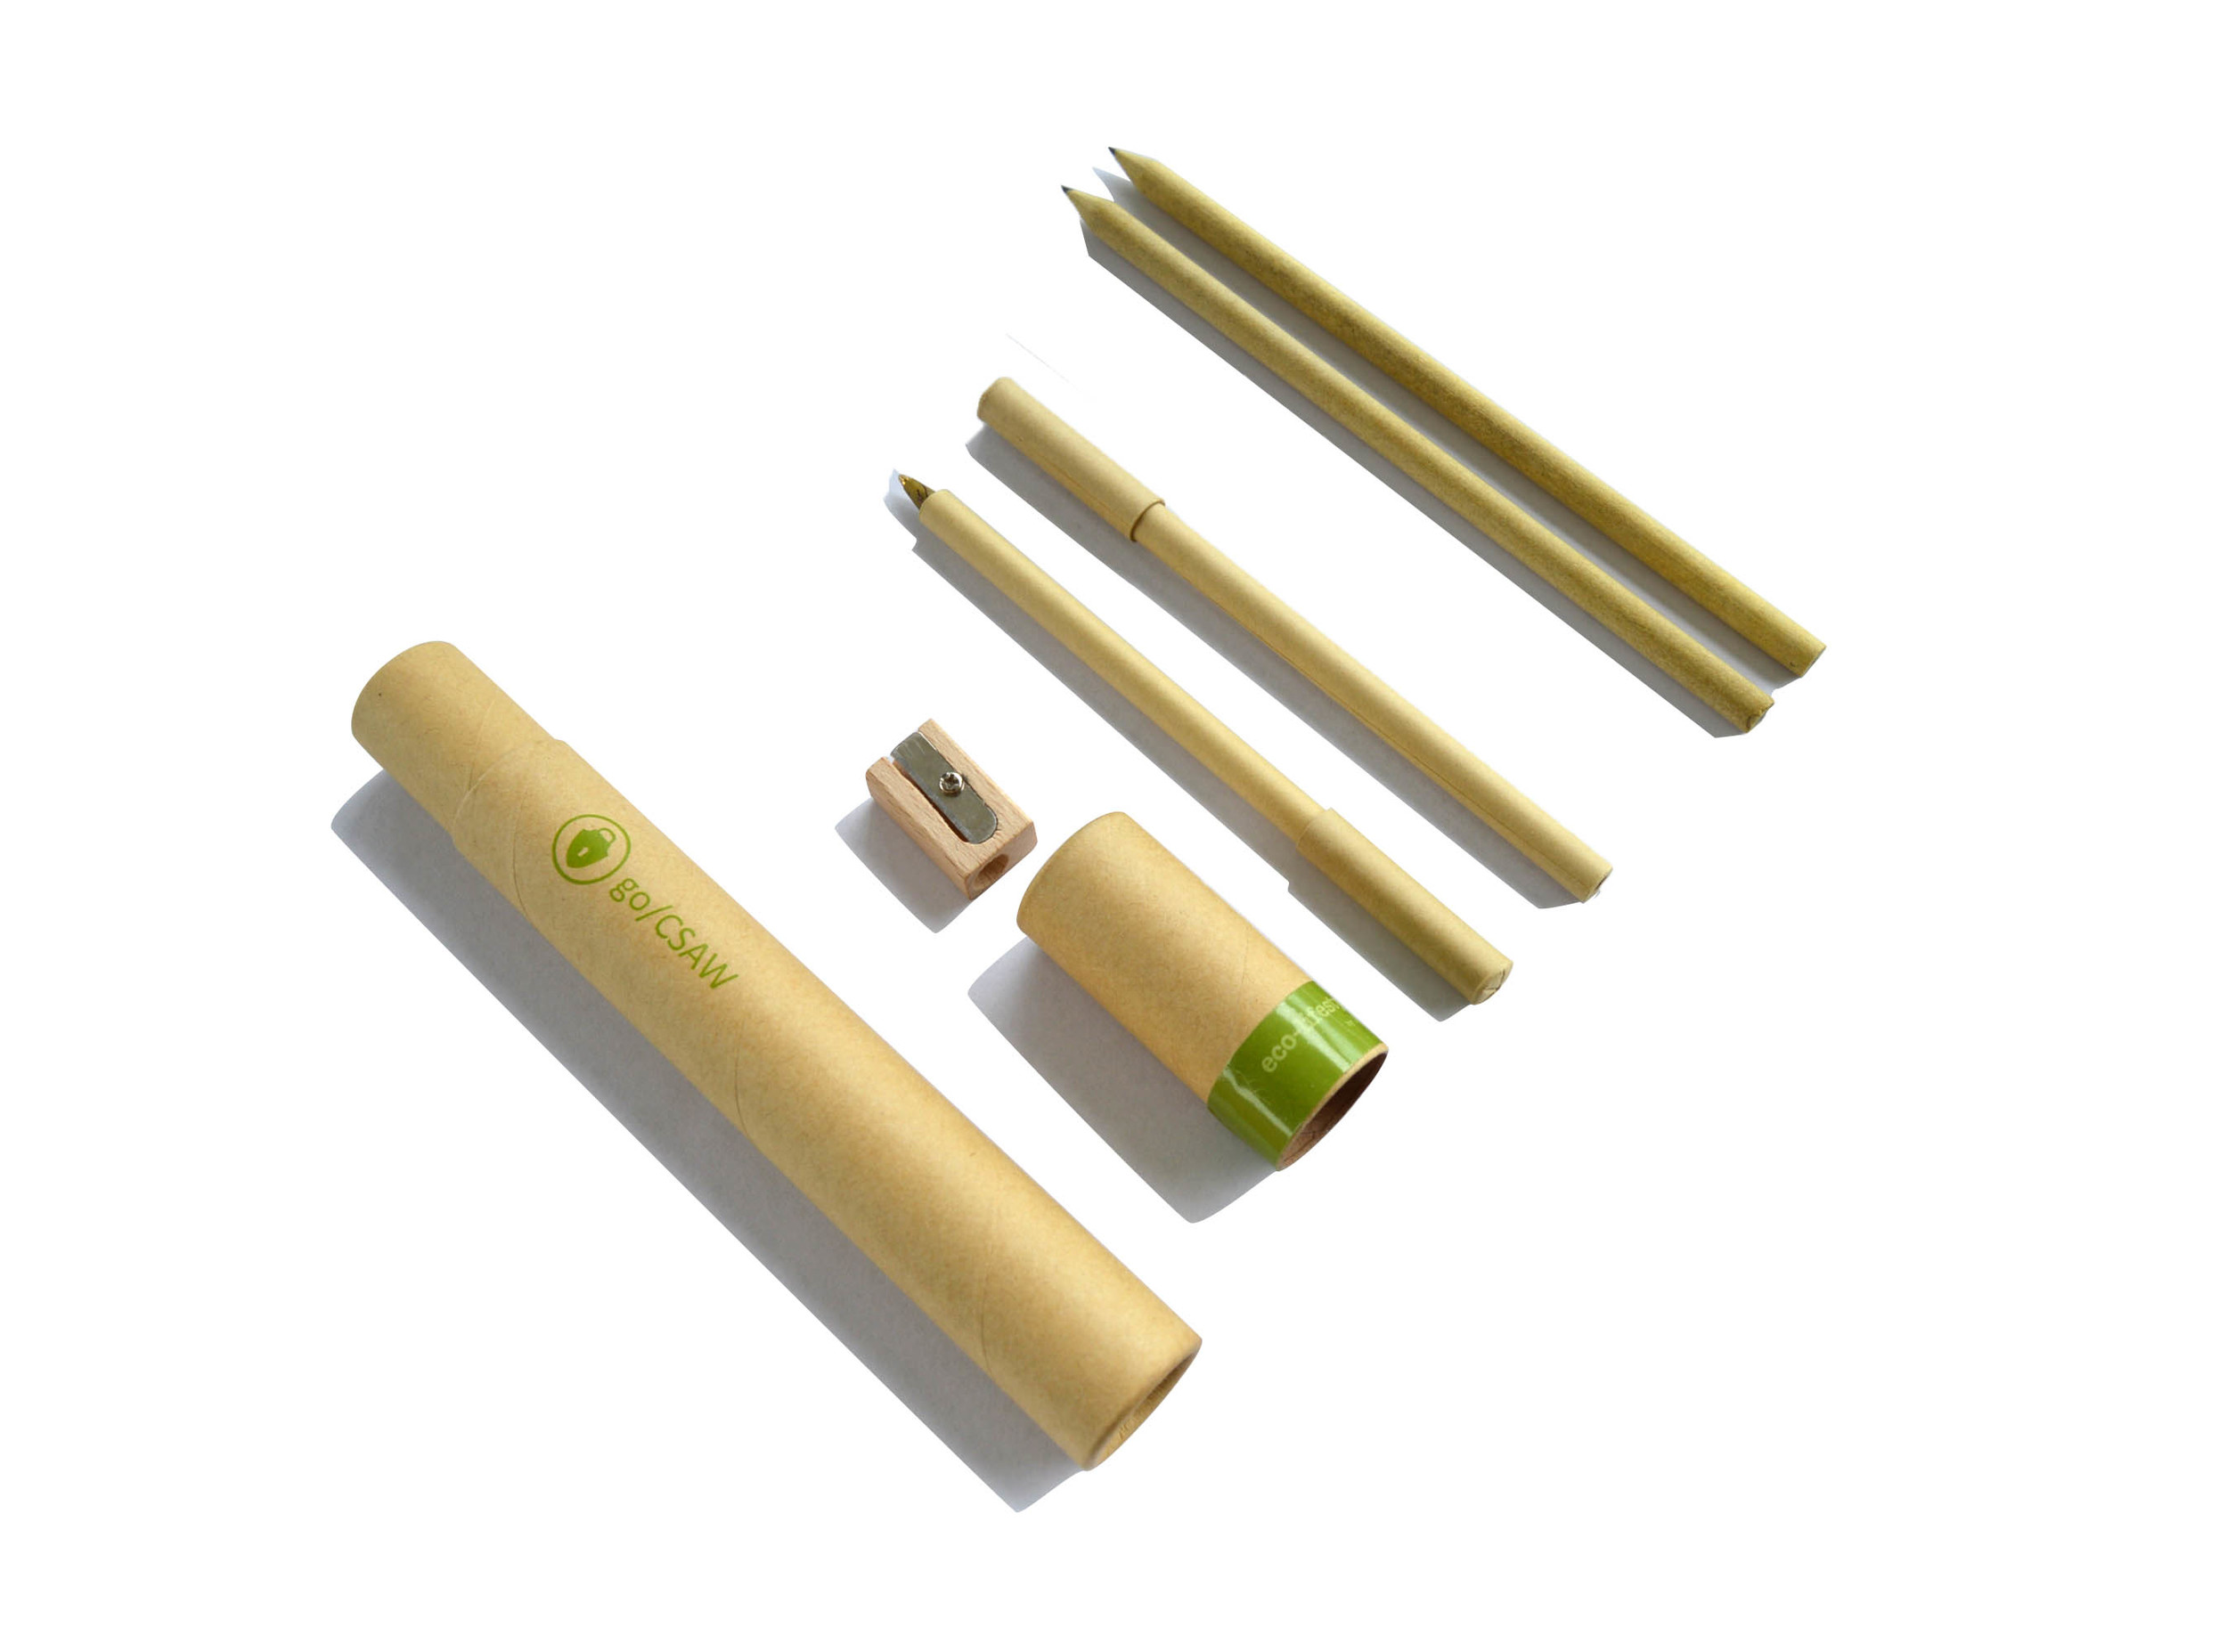 Humana Eco-Pen & Pencil Set